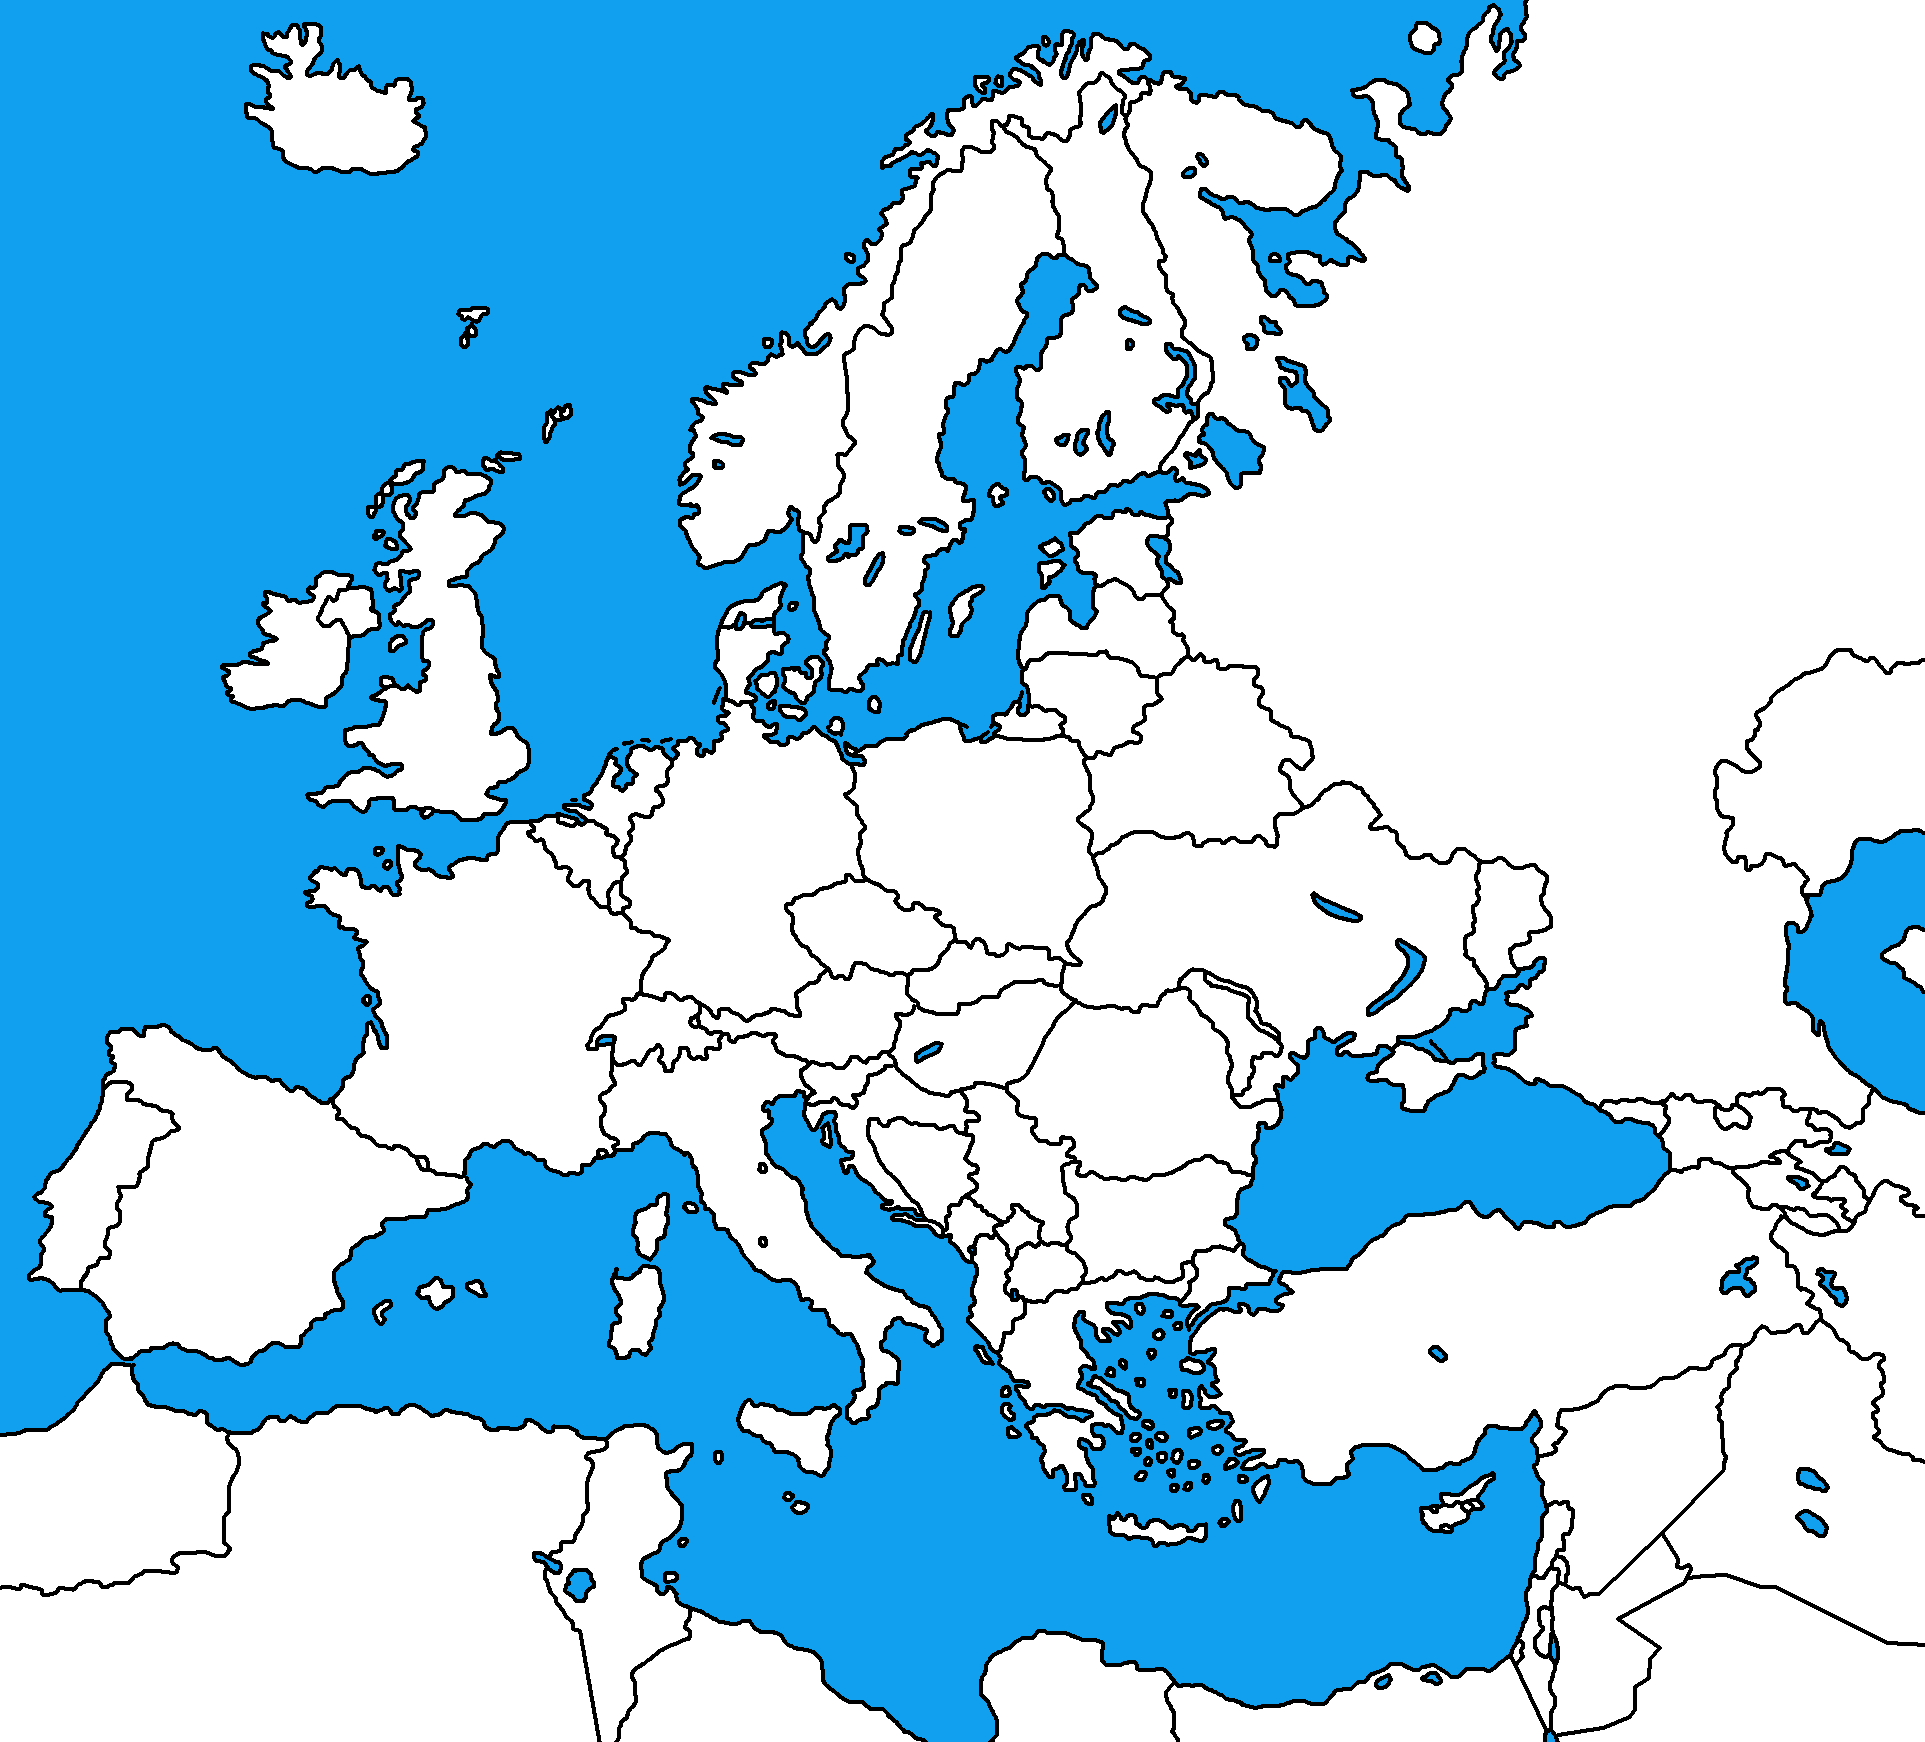 blank map of europepng